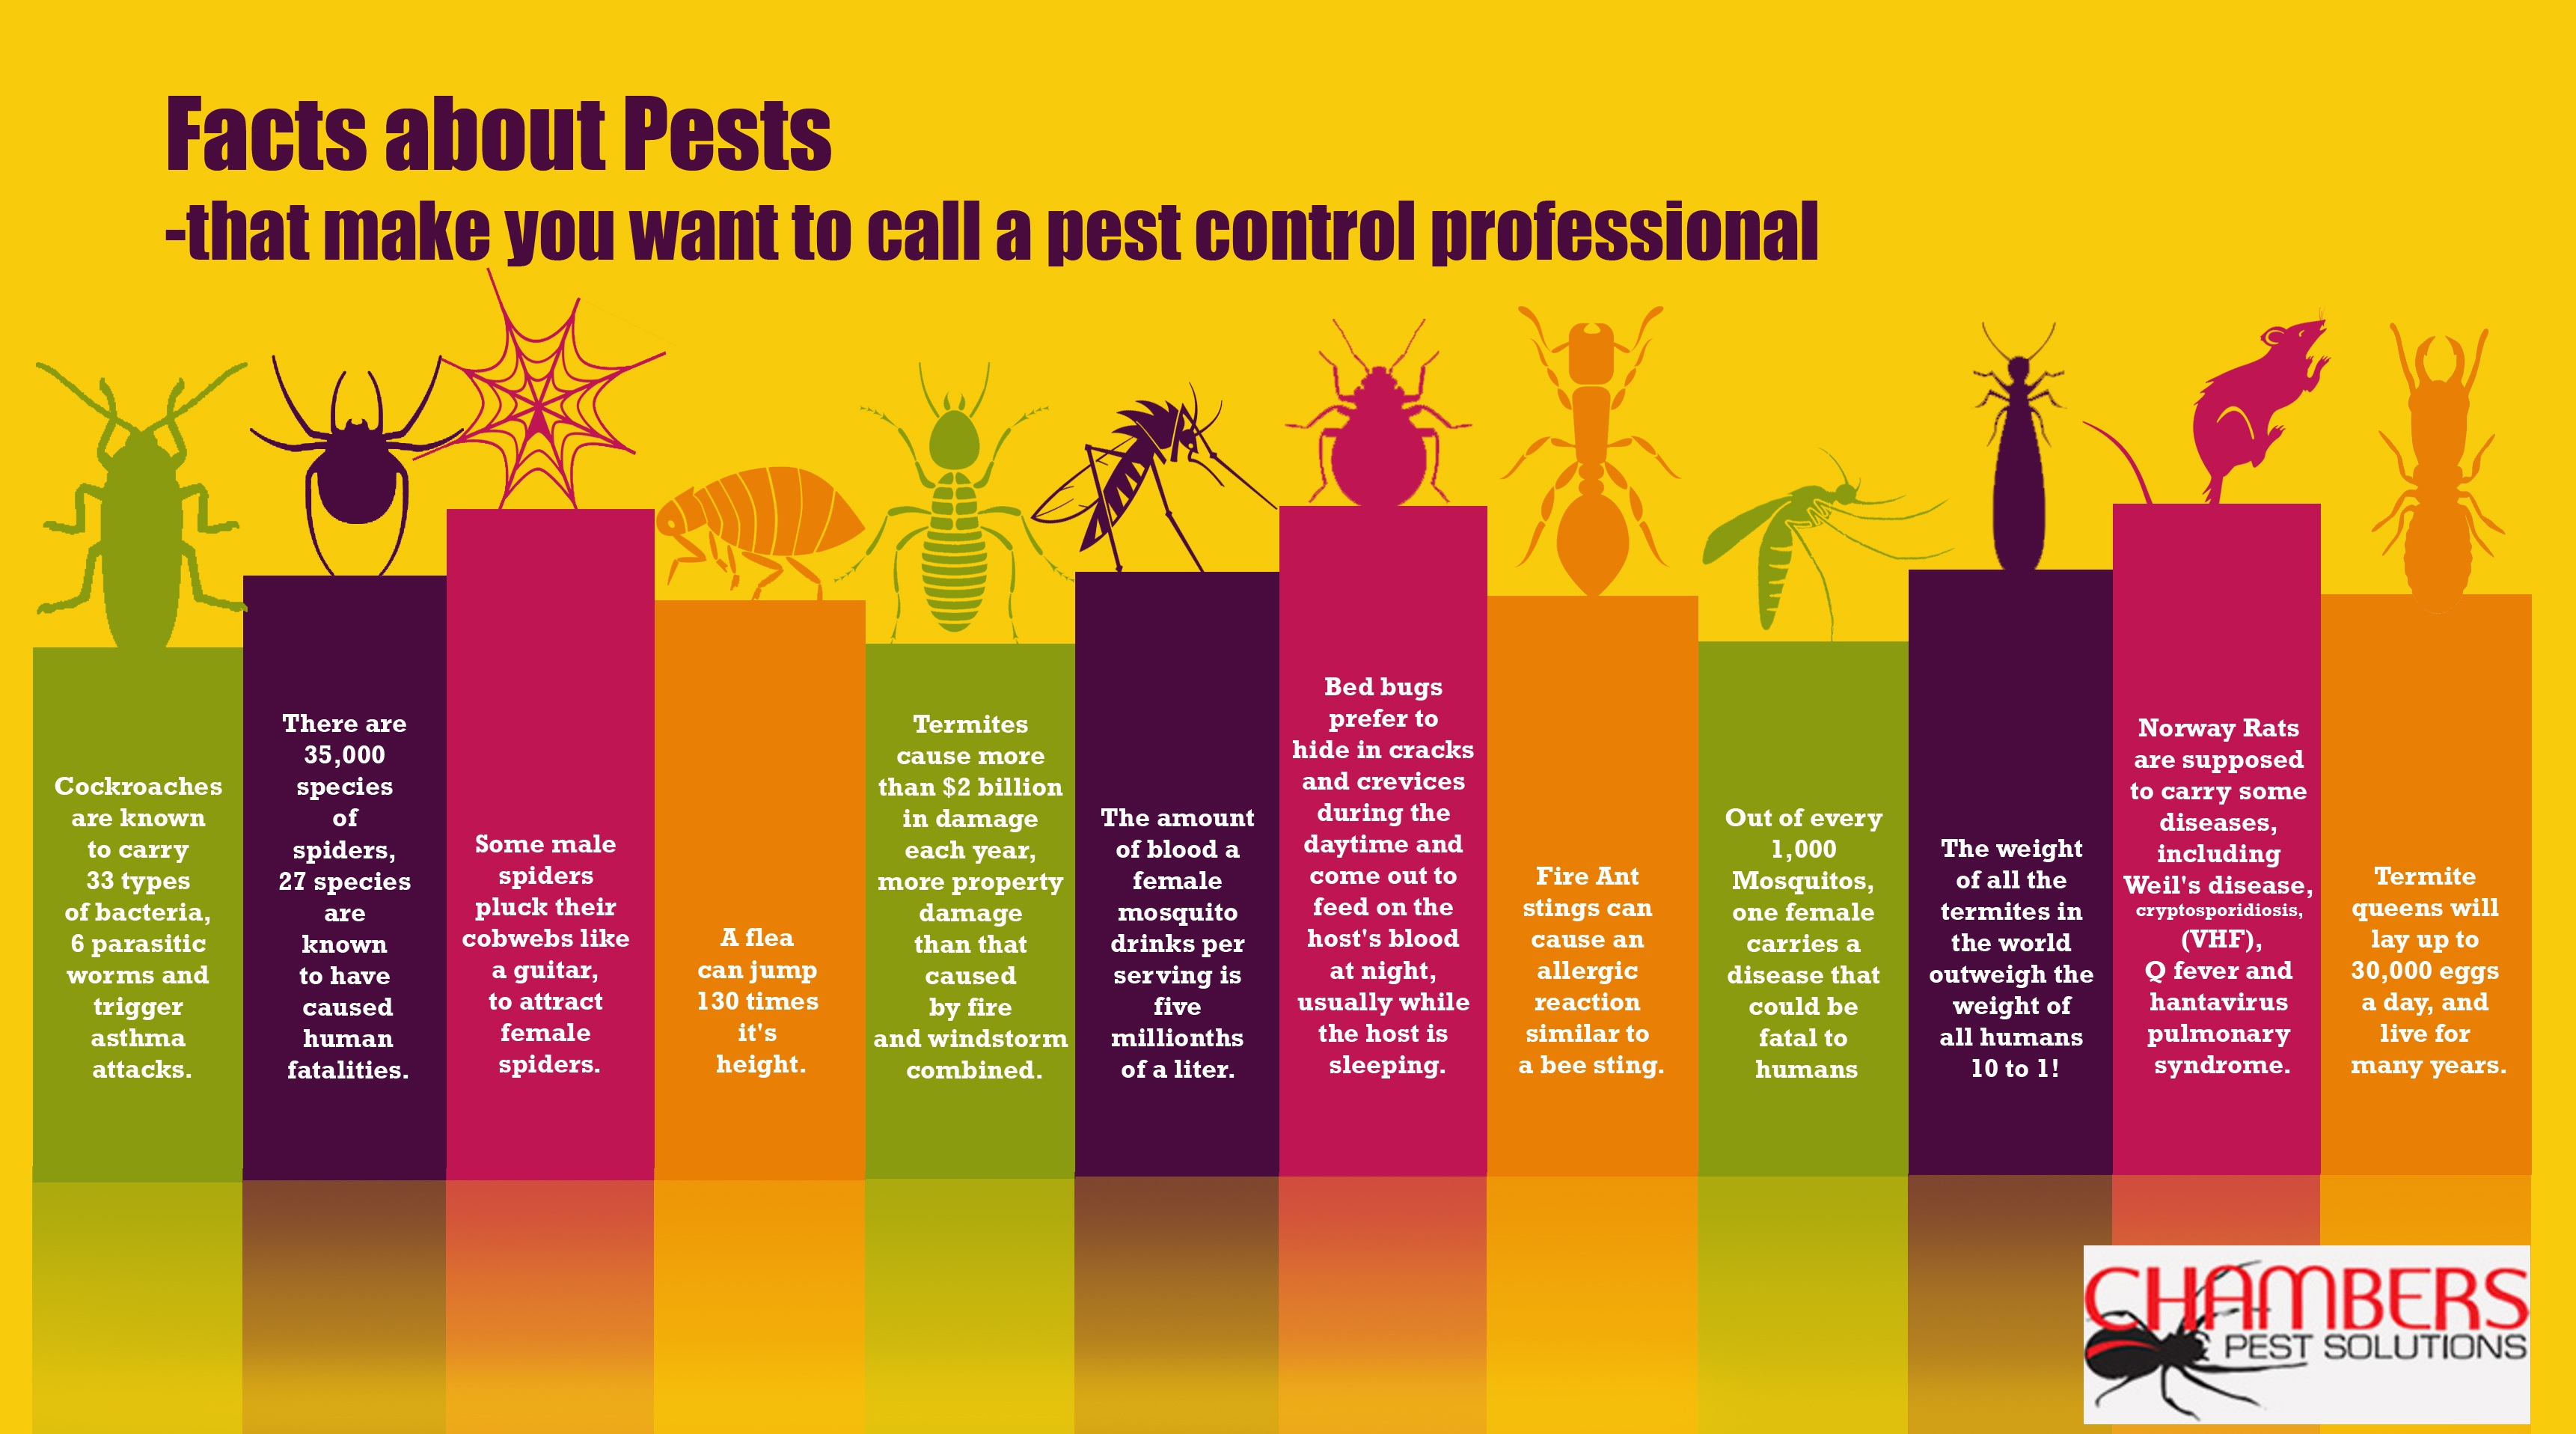 facts-about-pests-that-make-you-want-to-call-a-pest-control-professional